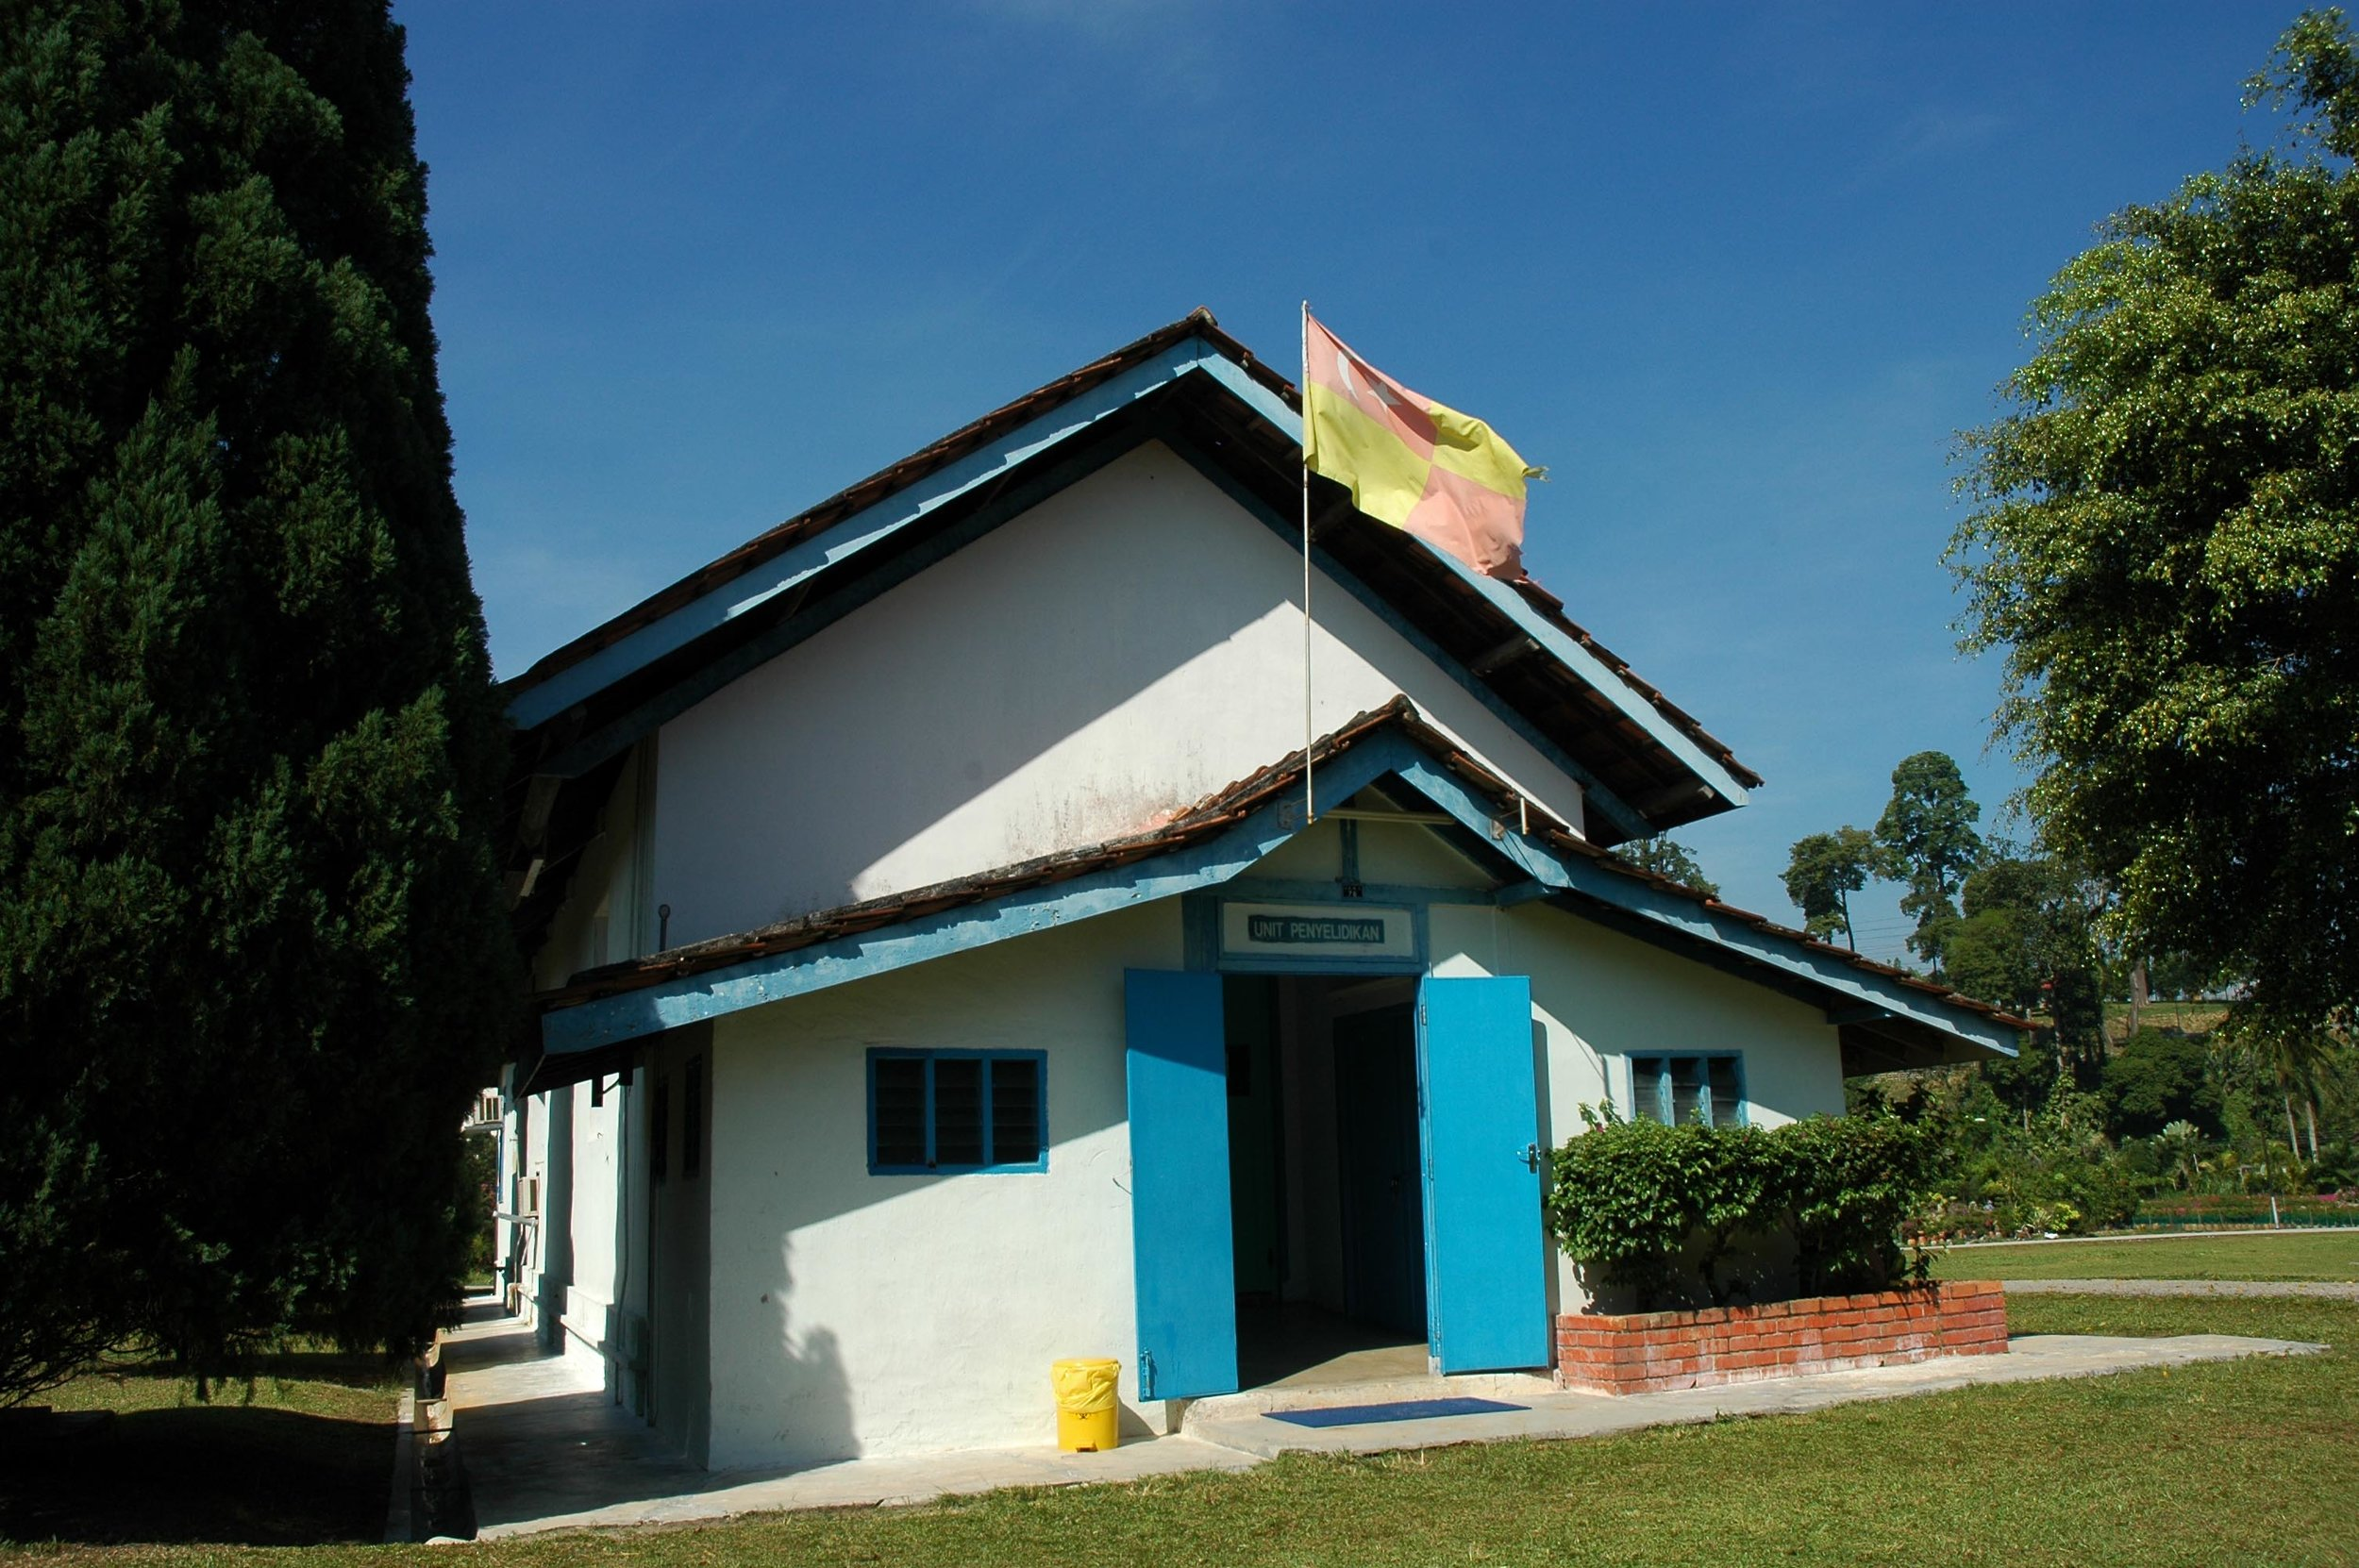 The Research Unit, established in 1951 to carry out research on the disease. (photo by Dr Lim Yong Long)